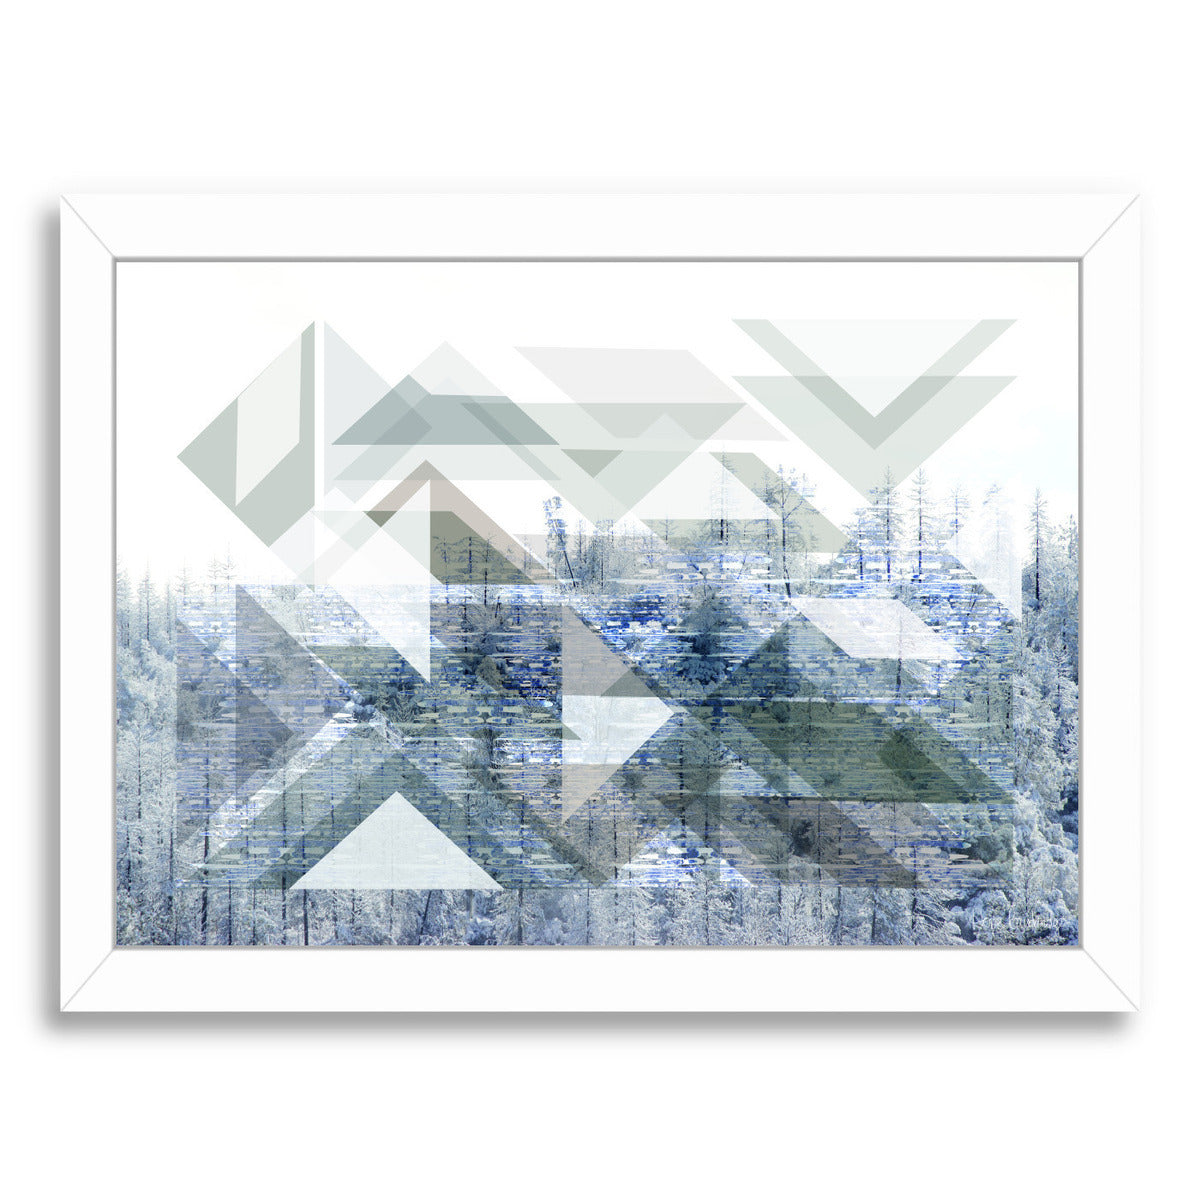 Patterns In Nature Vi by Hope Bainbridge - White Framed Print - Wall Art - Americanflat